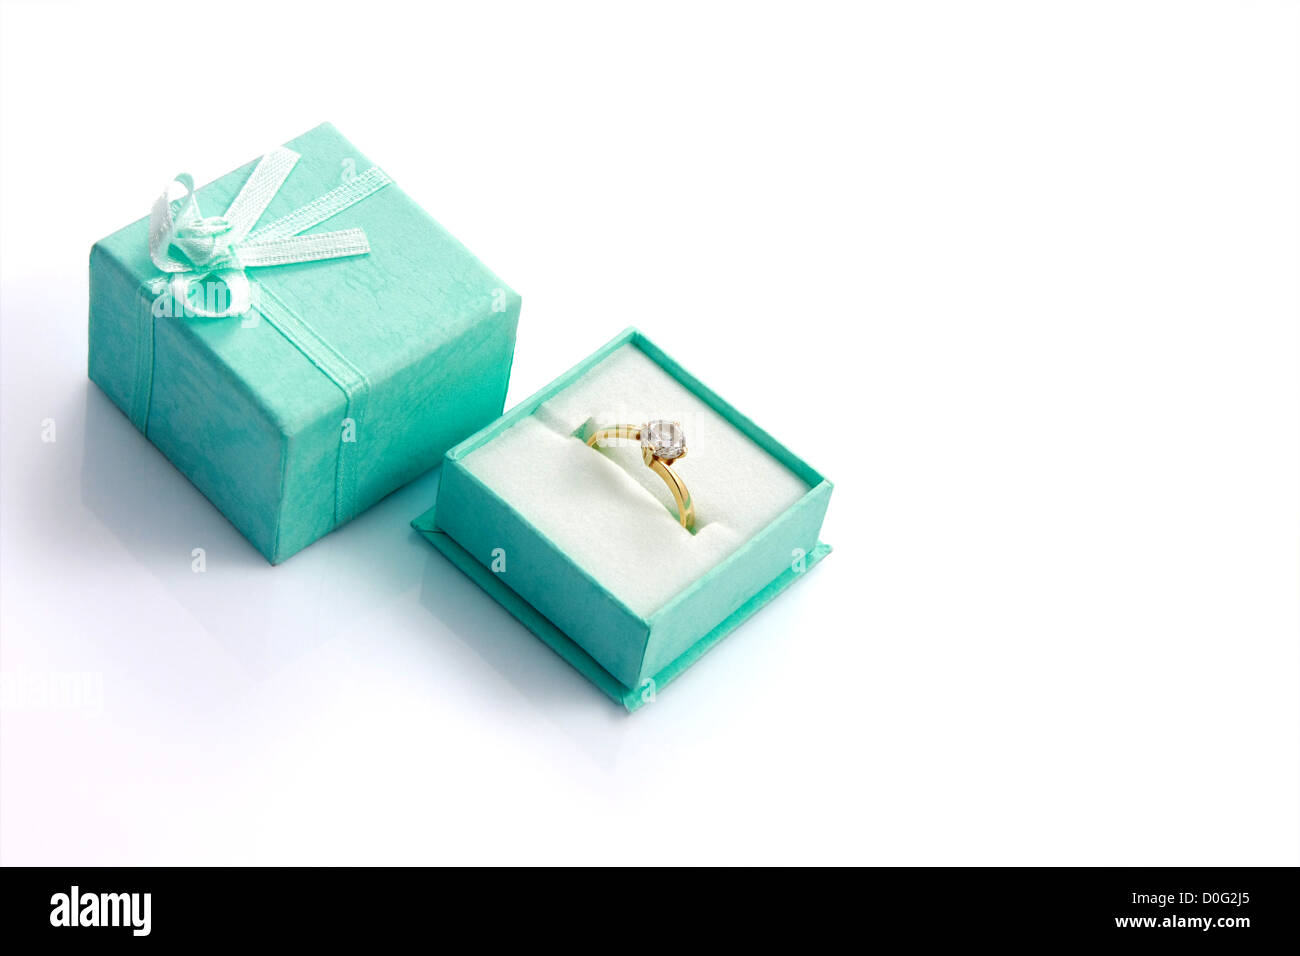 Diamond ring in green gift box isolated on white with copyspace - Stock Image